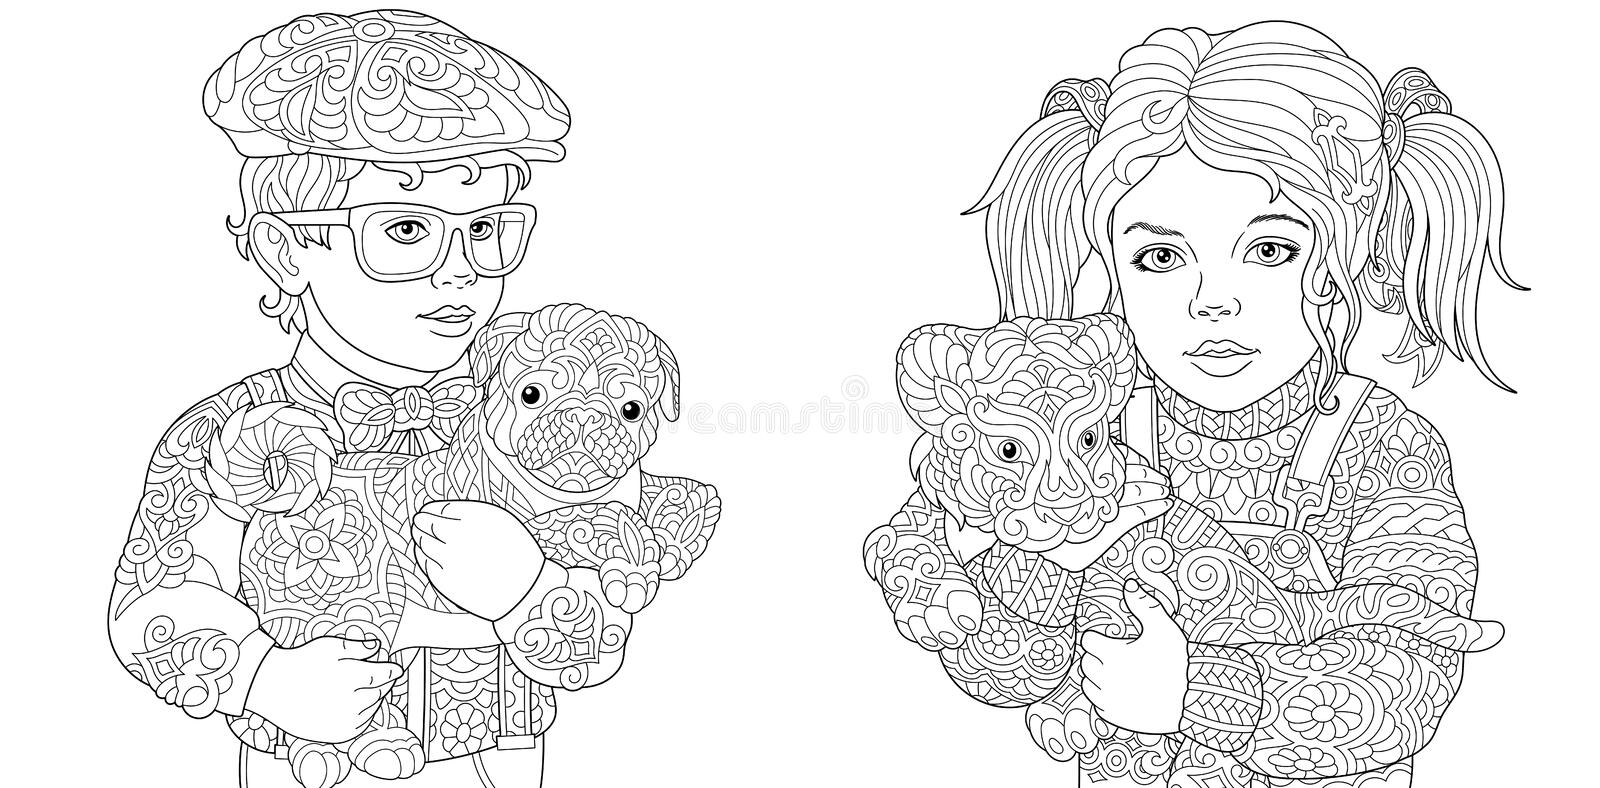 Baby Coloring Sheets – Dialogueeurope | 394x800